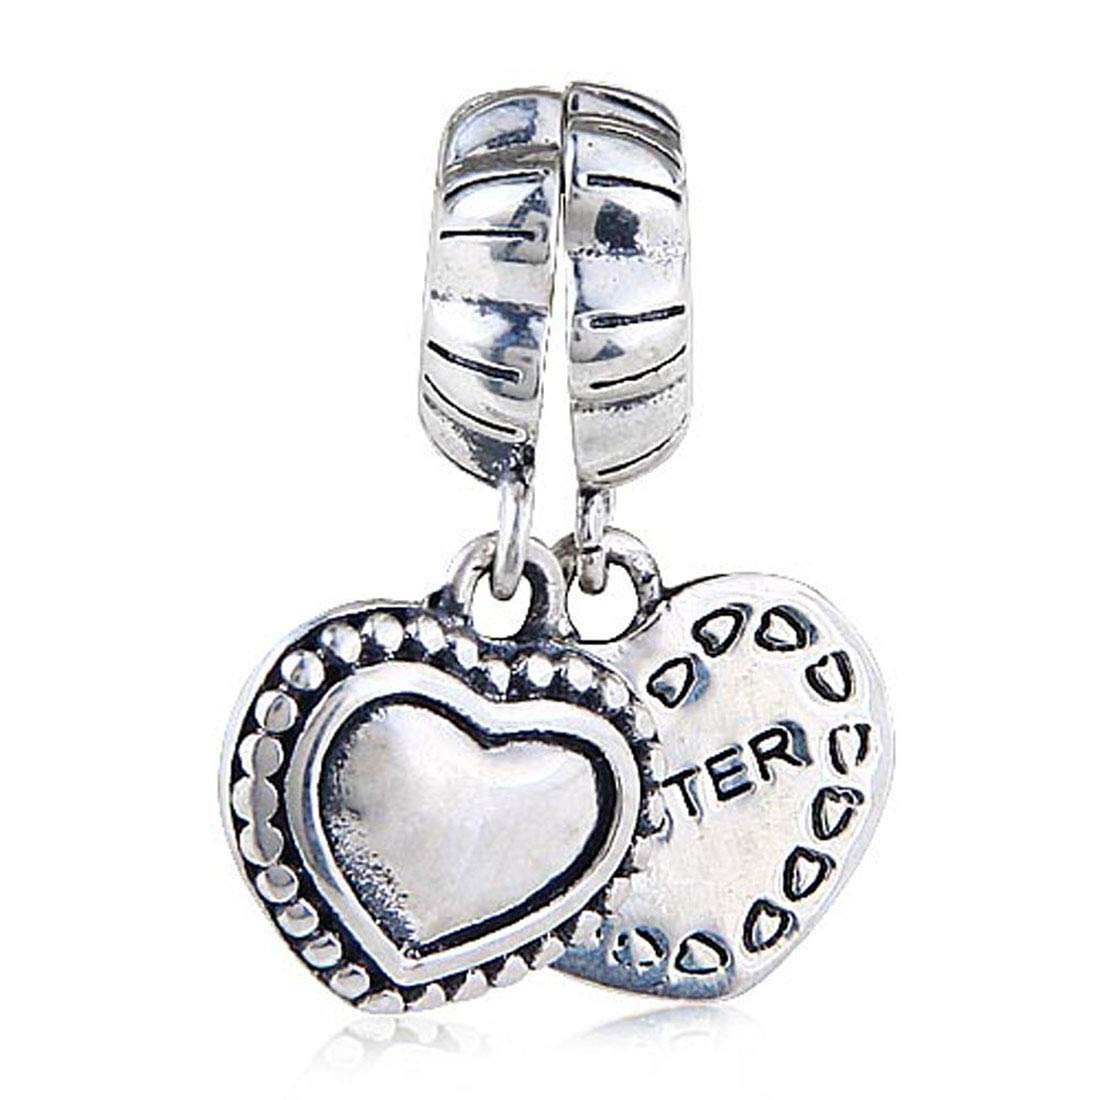 4f4567105 Amazon.com: Sister Charm 925 Sterling silver Heart Charm Love Charm Dangle  Charm for Pandora Bracelet: Arts, Crafts & Sewing